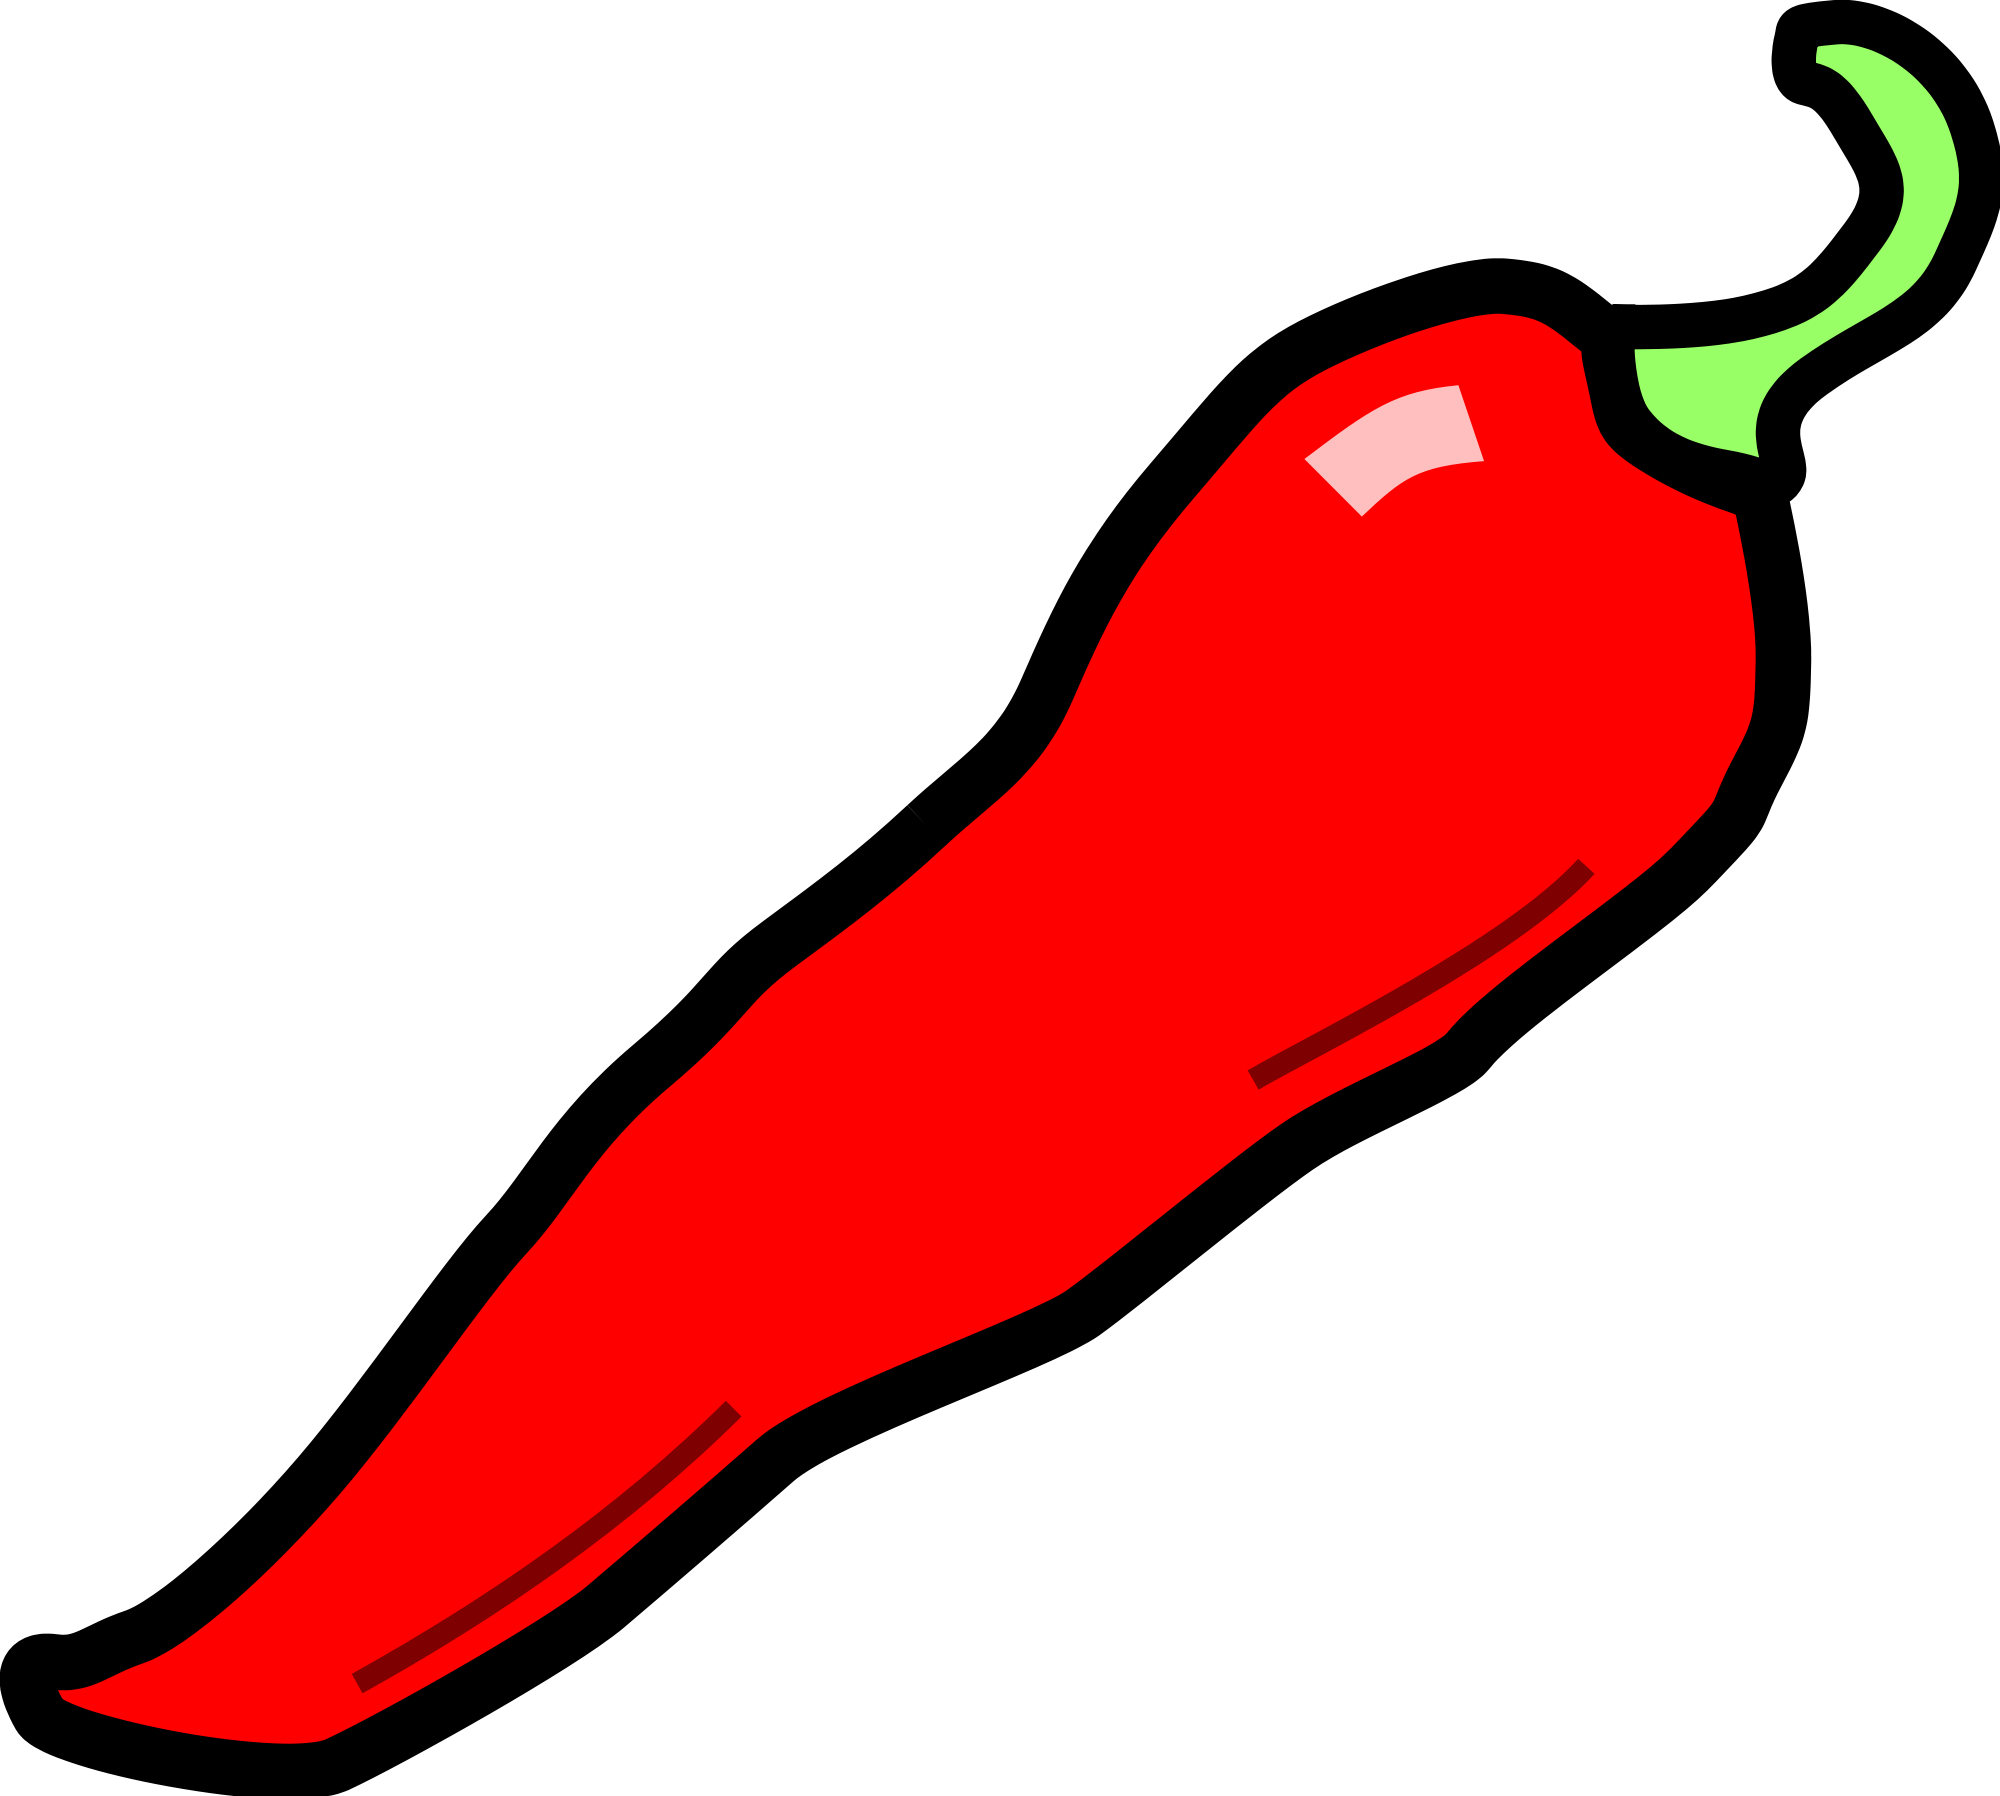 Chili drawing green chilli. Collection of free clipart